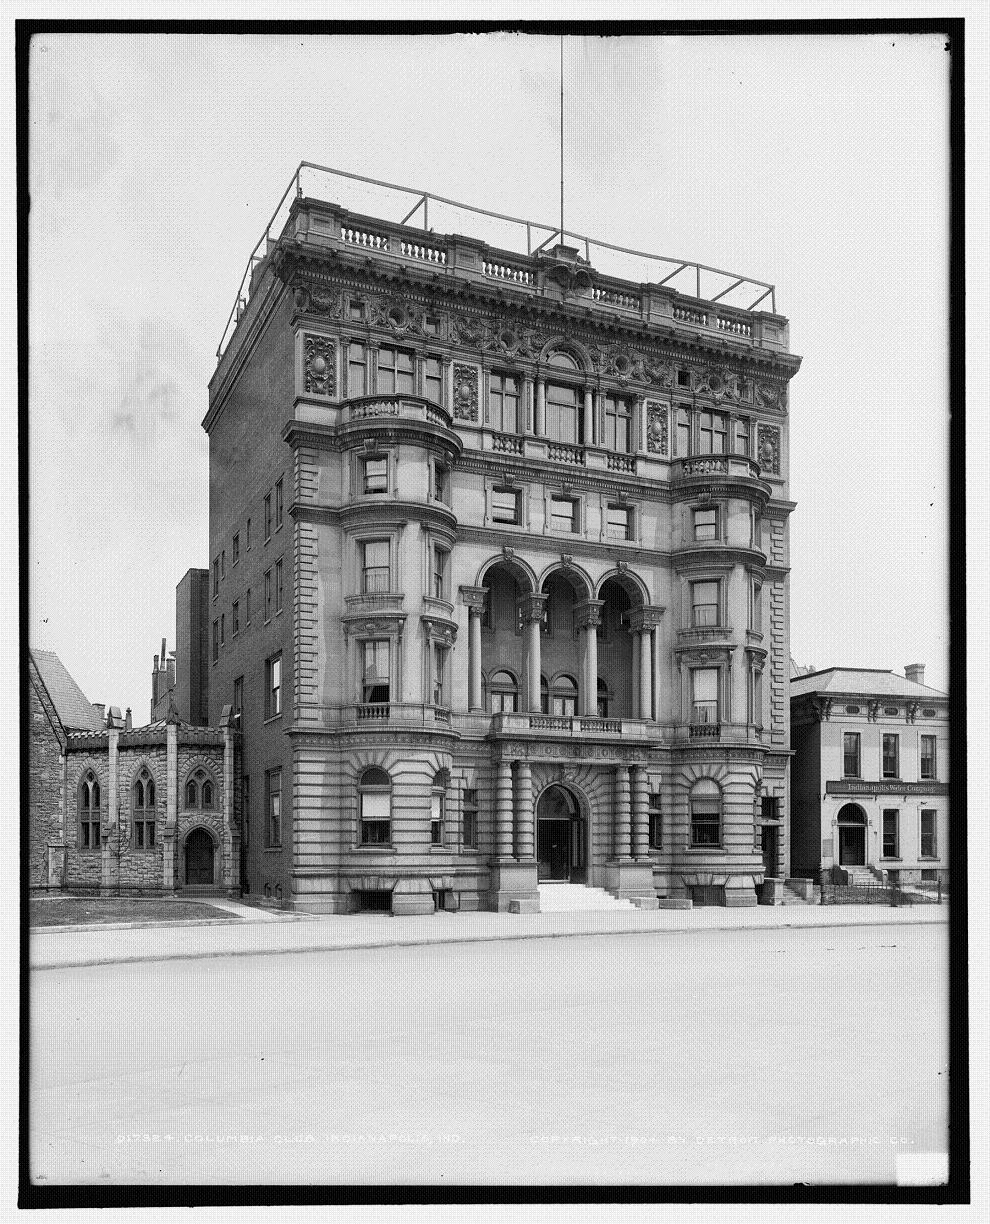 This building served as the Columbia Club's home from 1898 to 1924.